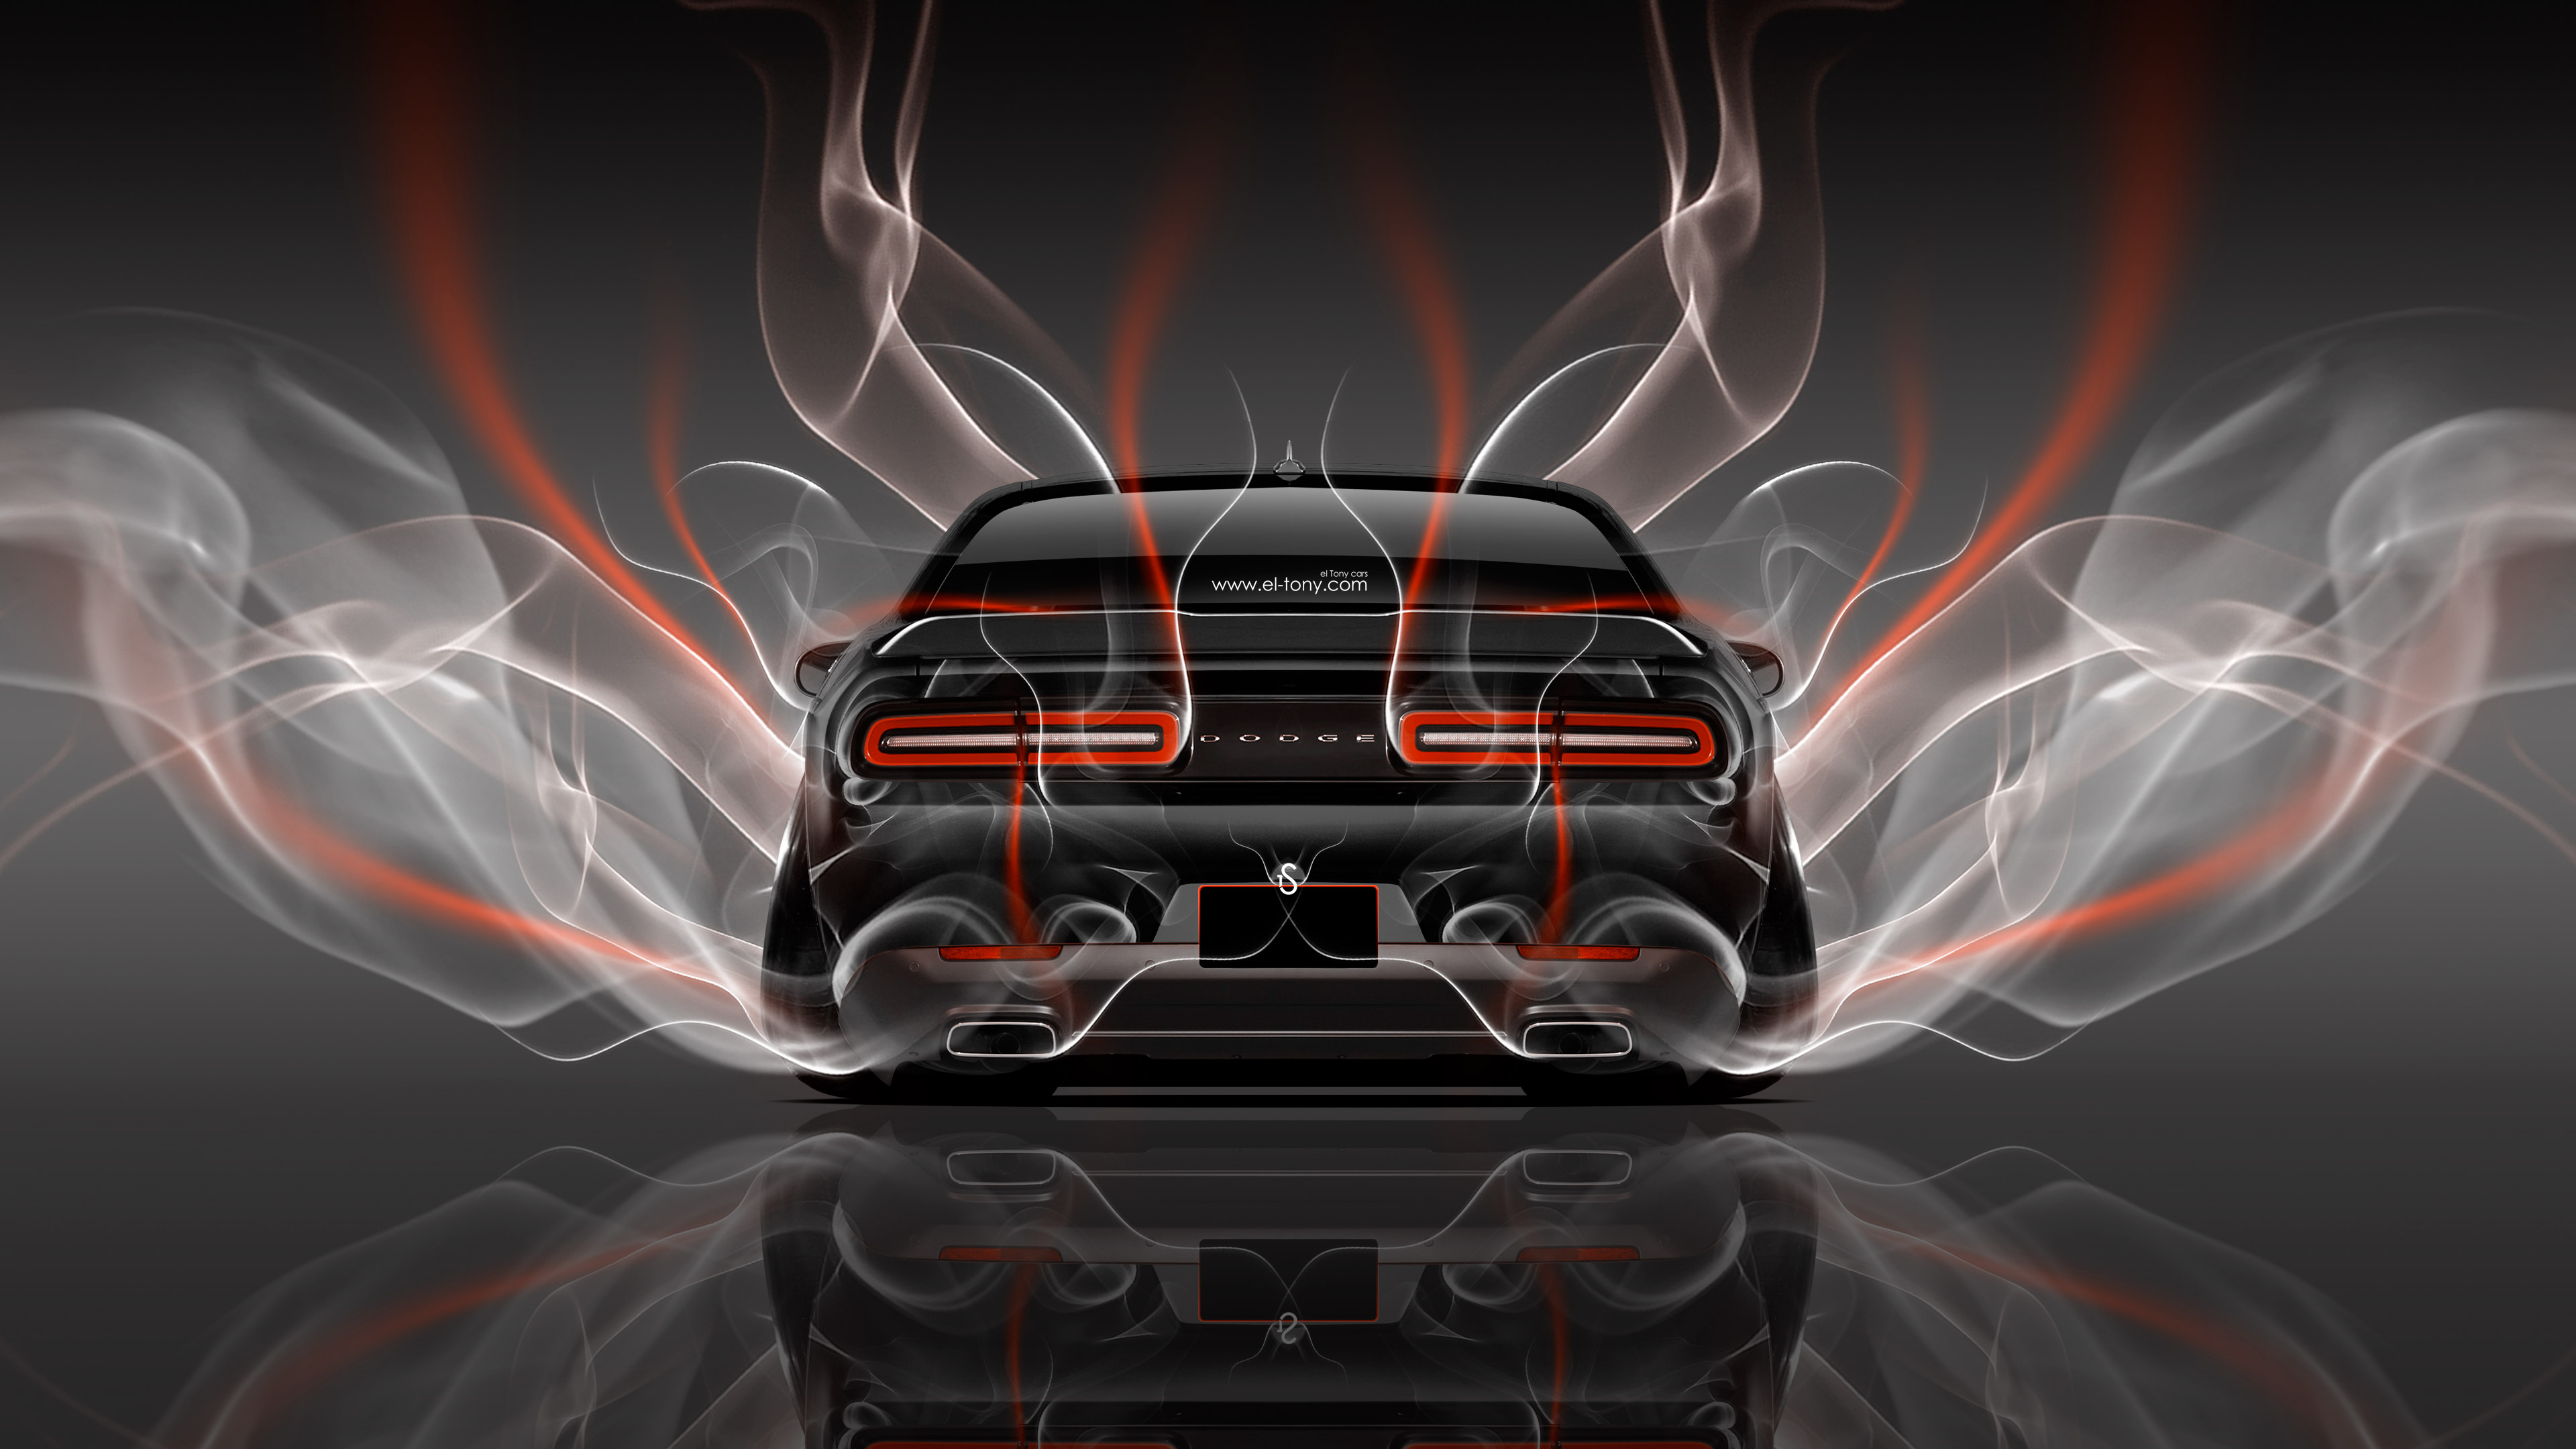 4k Dodge Challenger Muscle Back Smoke Car 2014 El Tony